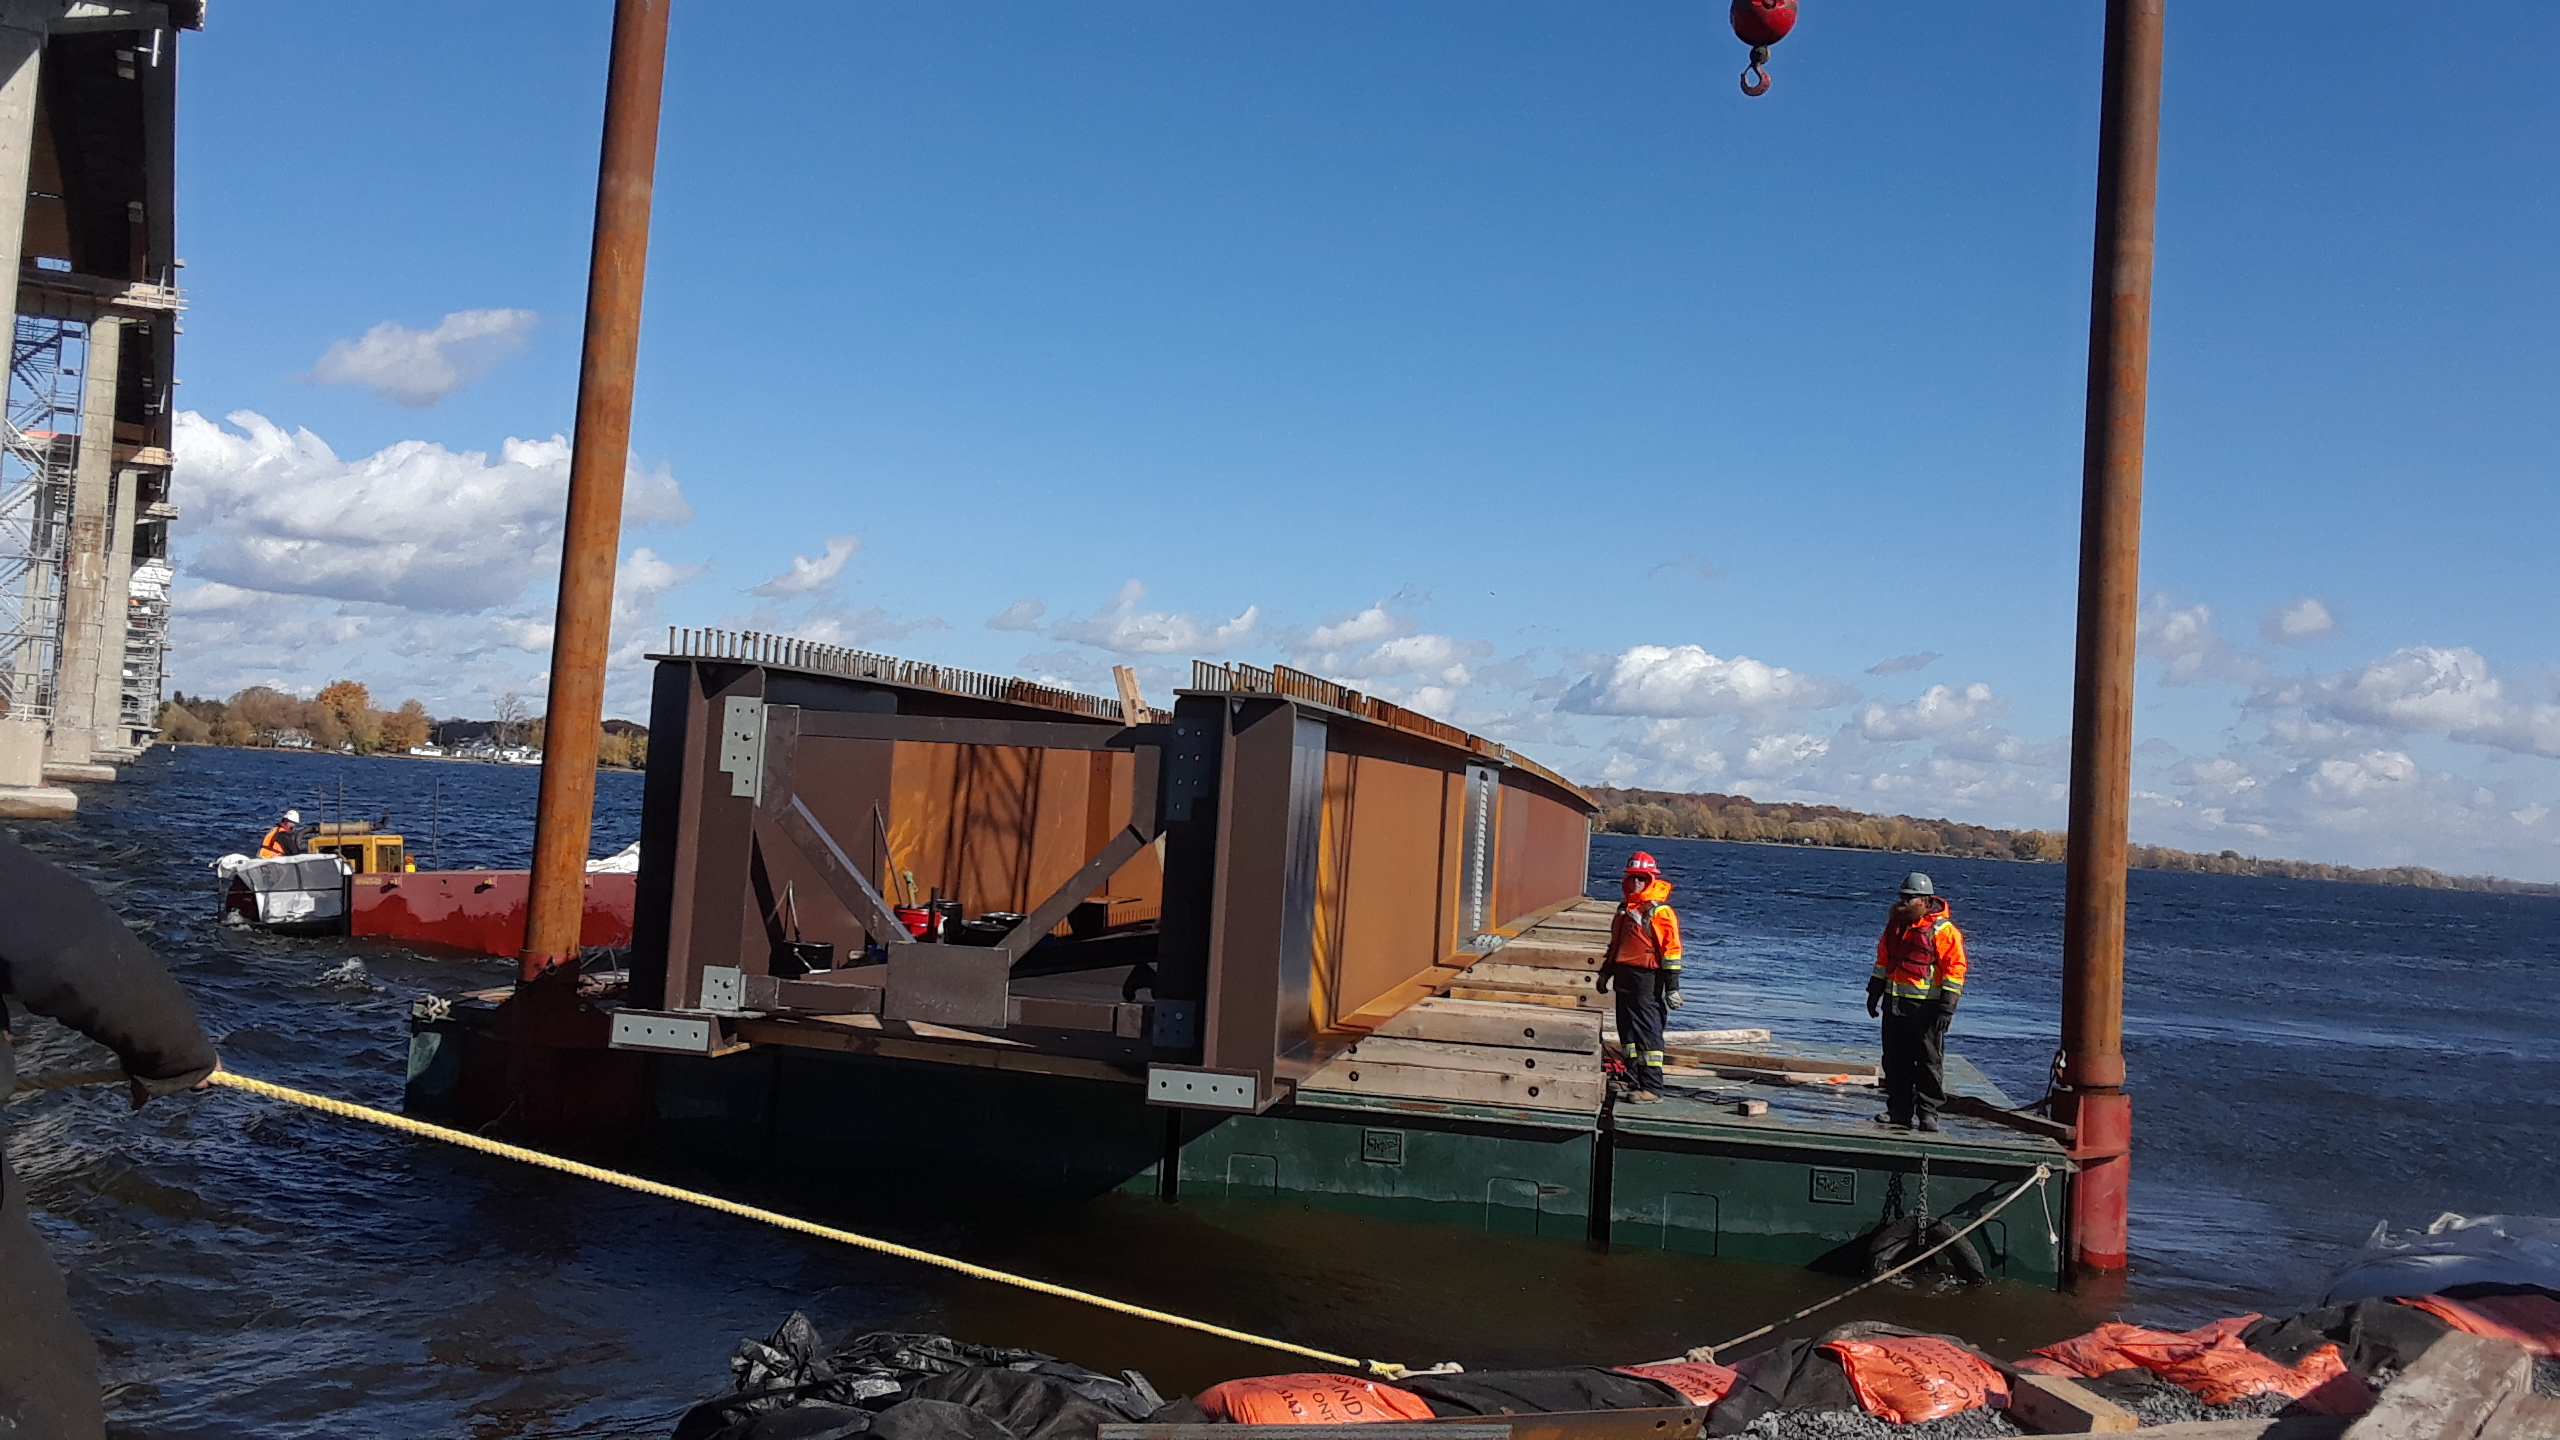 Moving the barge and the Approach girder into shore